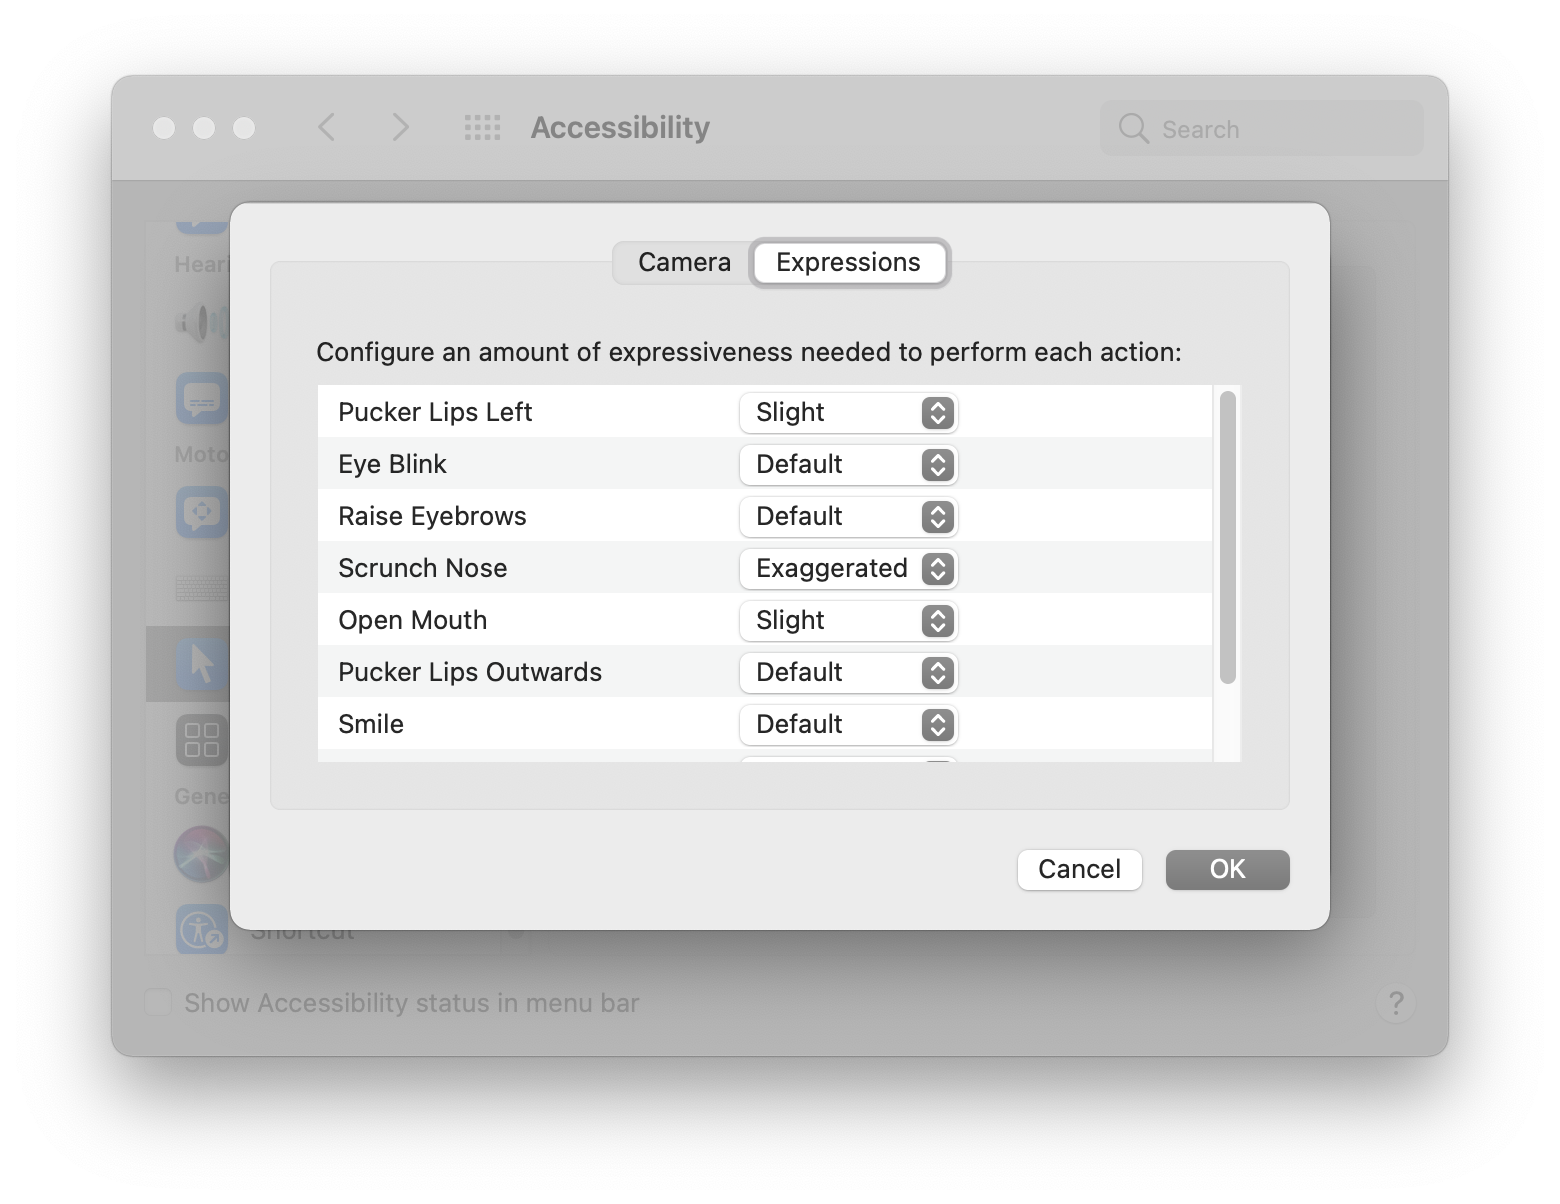 The Expressions preferences menu. Pucker Lips Left and Open Mouth have been set to Slight. Scrunch Nose has been set to Exaggerated. Screenshot.